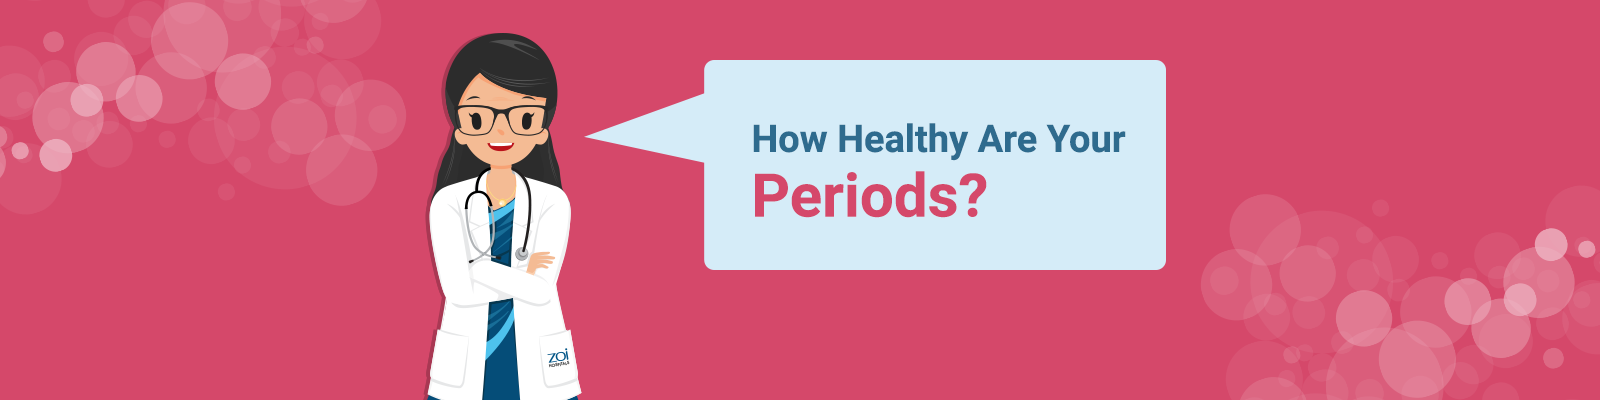 How Healthy Are Your Periods?